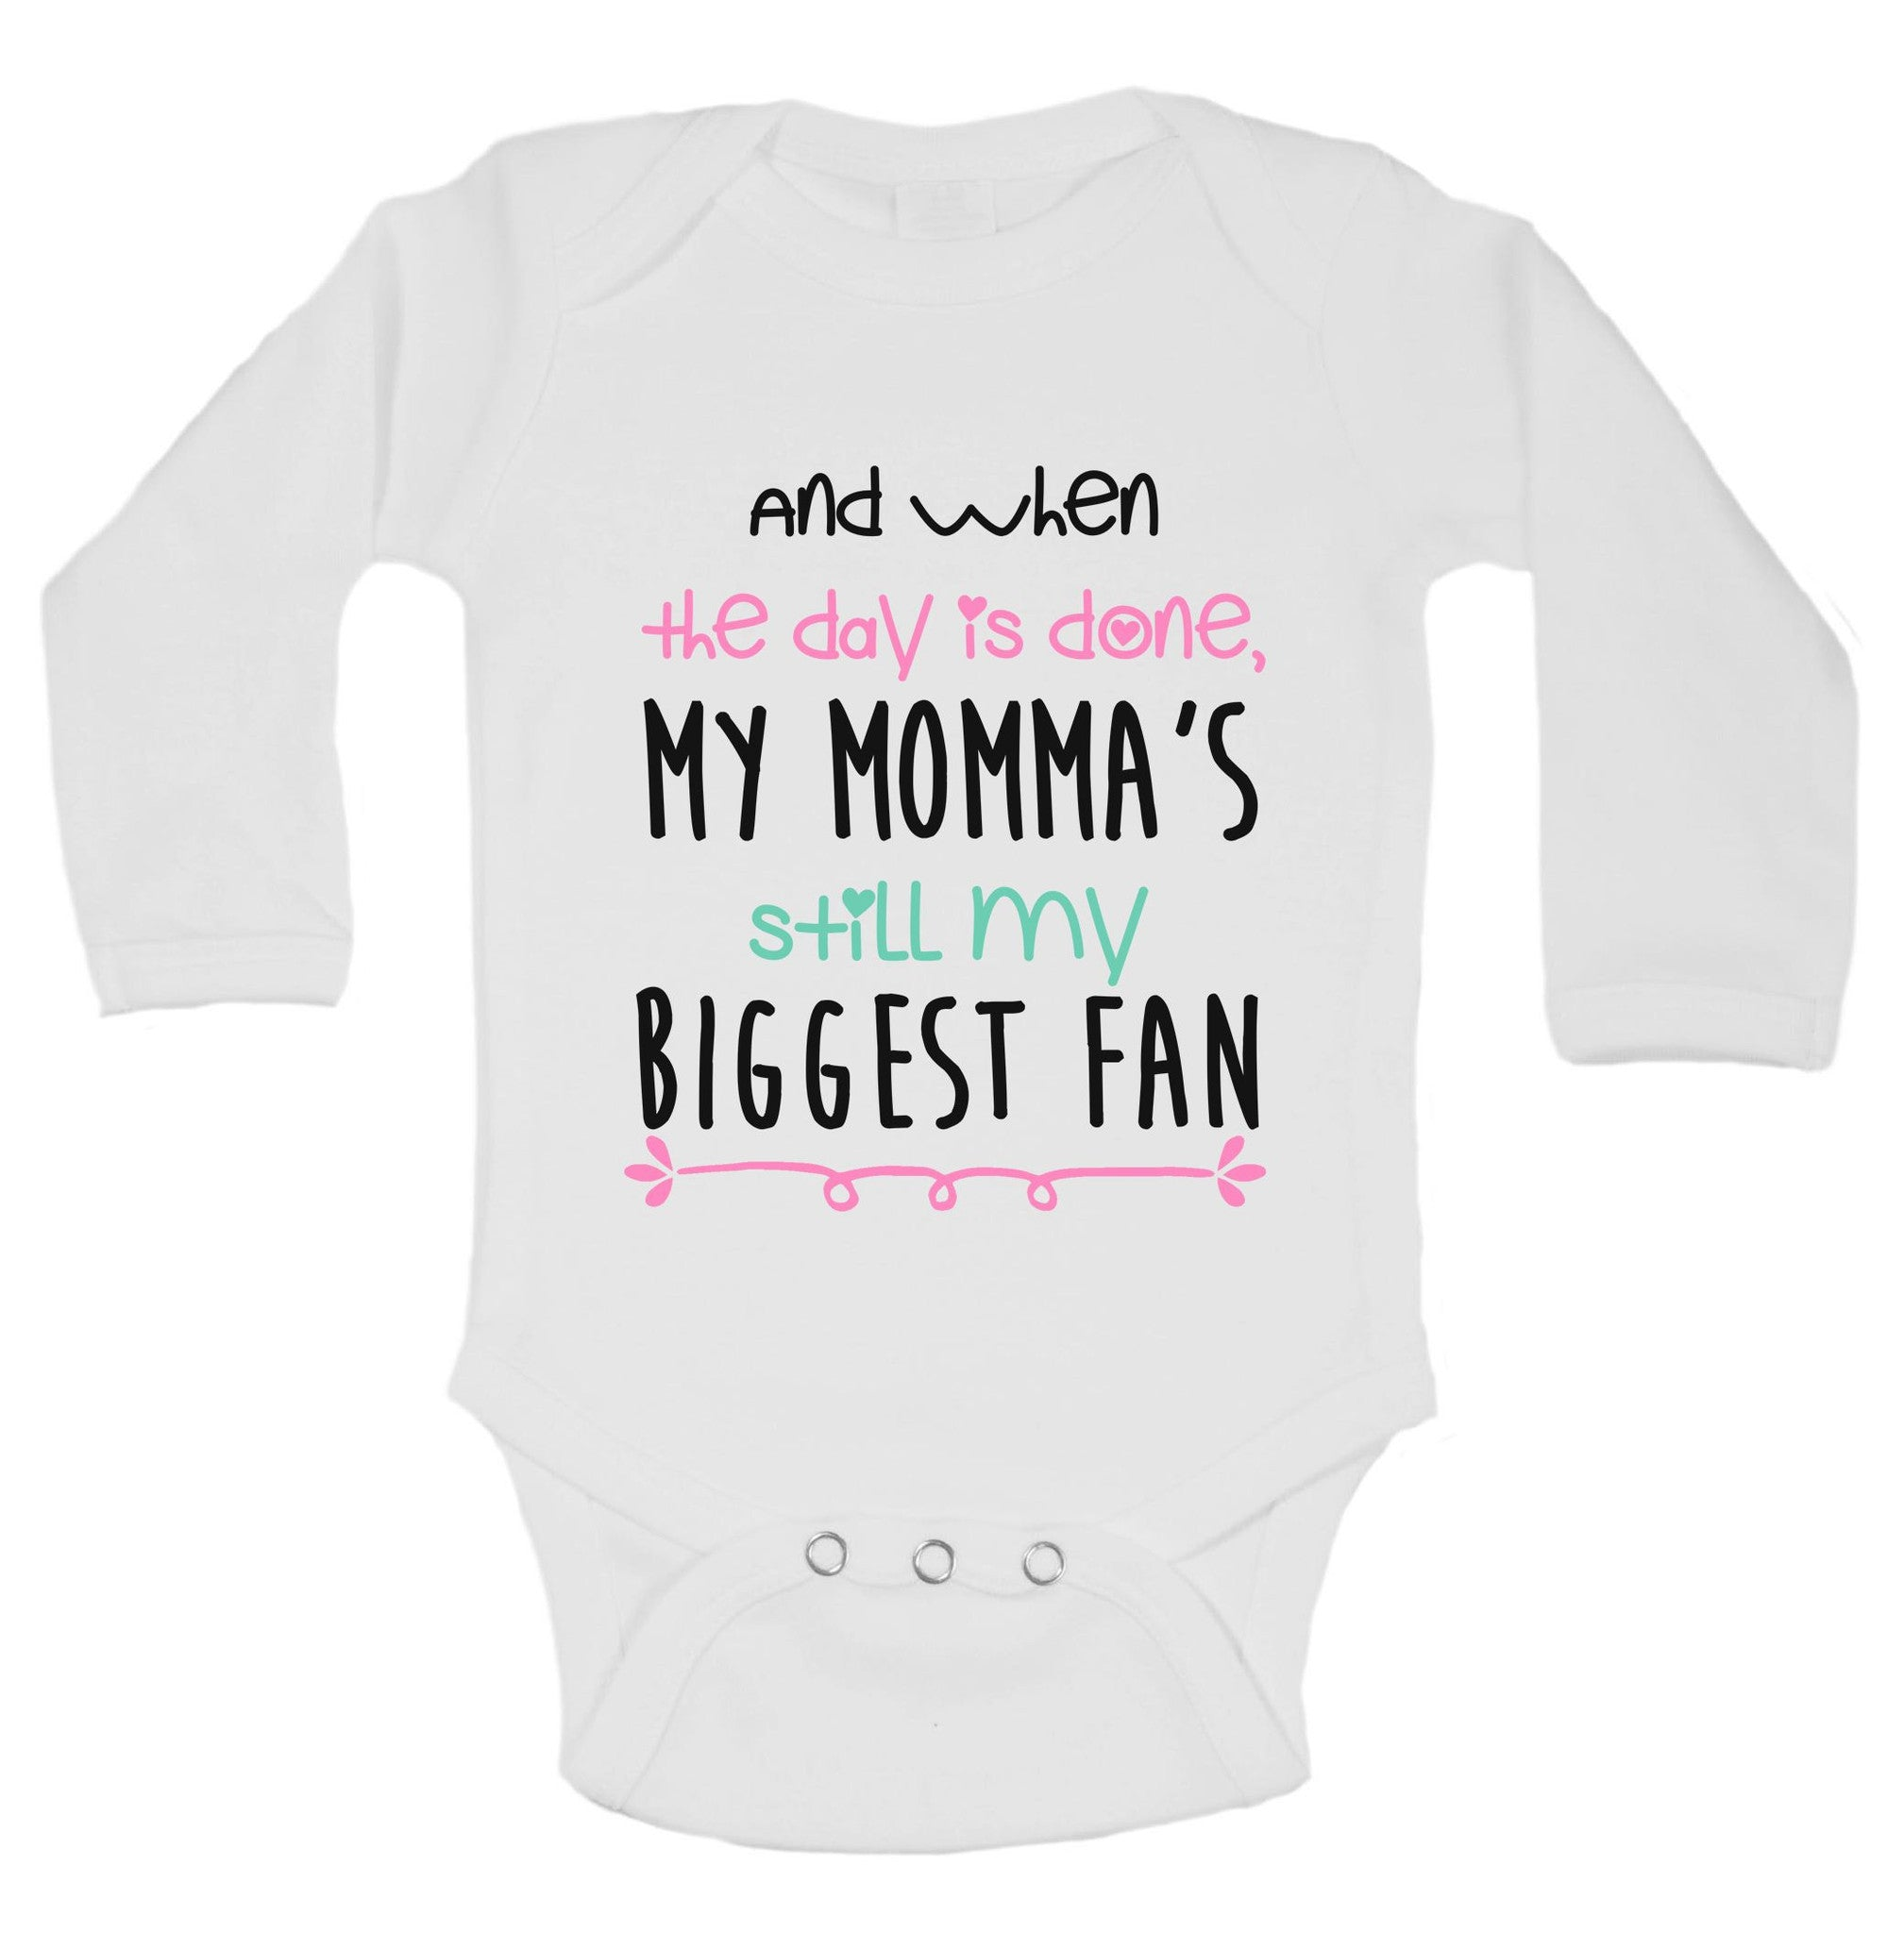 And When The Day Is Done, My Momma's Still My Biggest Fan Funny Kids Onesie - B215 - Funny Shirts Tank Tops Burnouts and Triblends  - 1